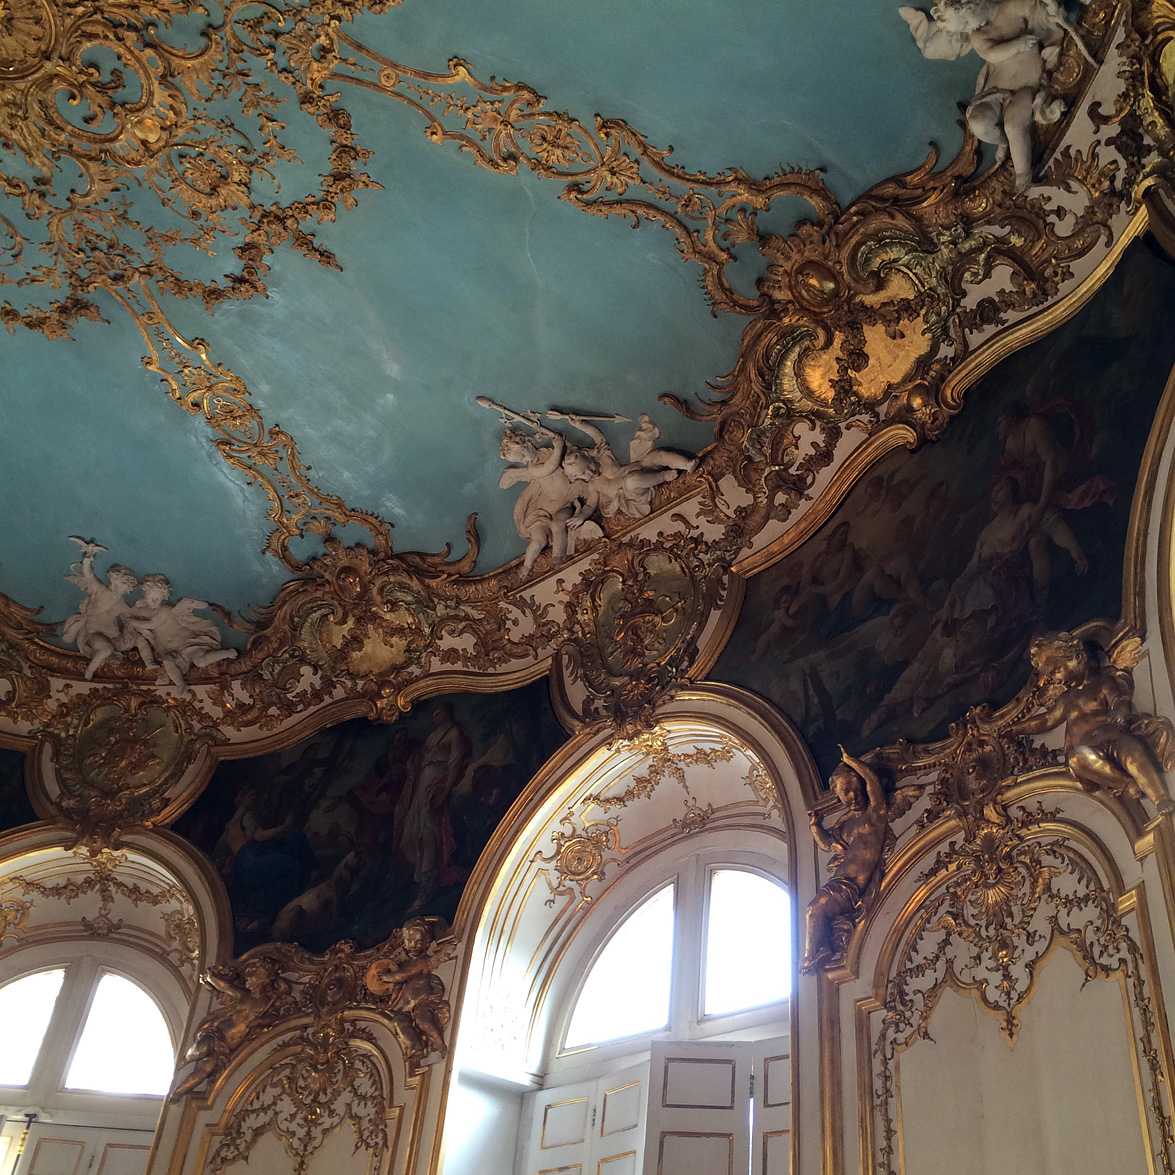 (above) A ceiling detail of the Princess's salon.